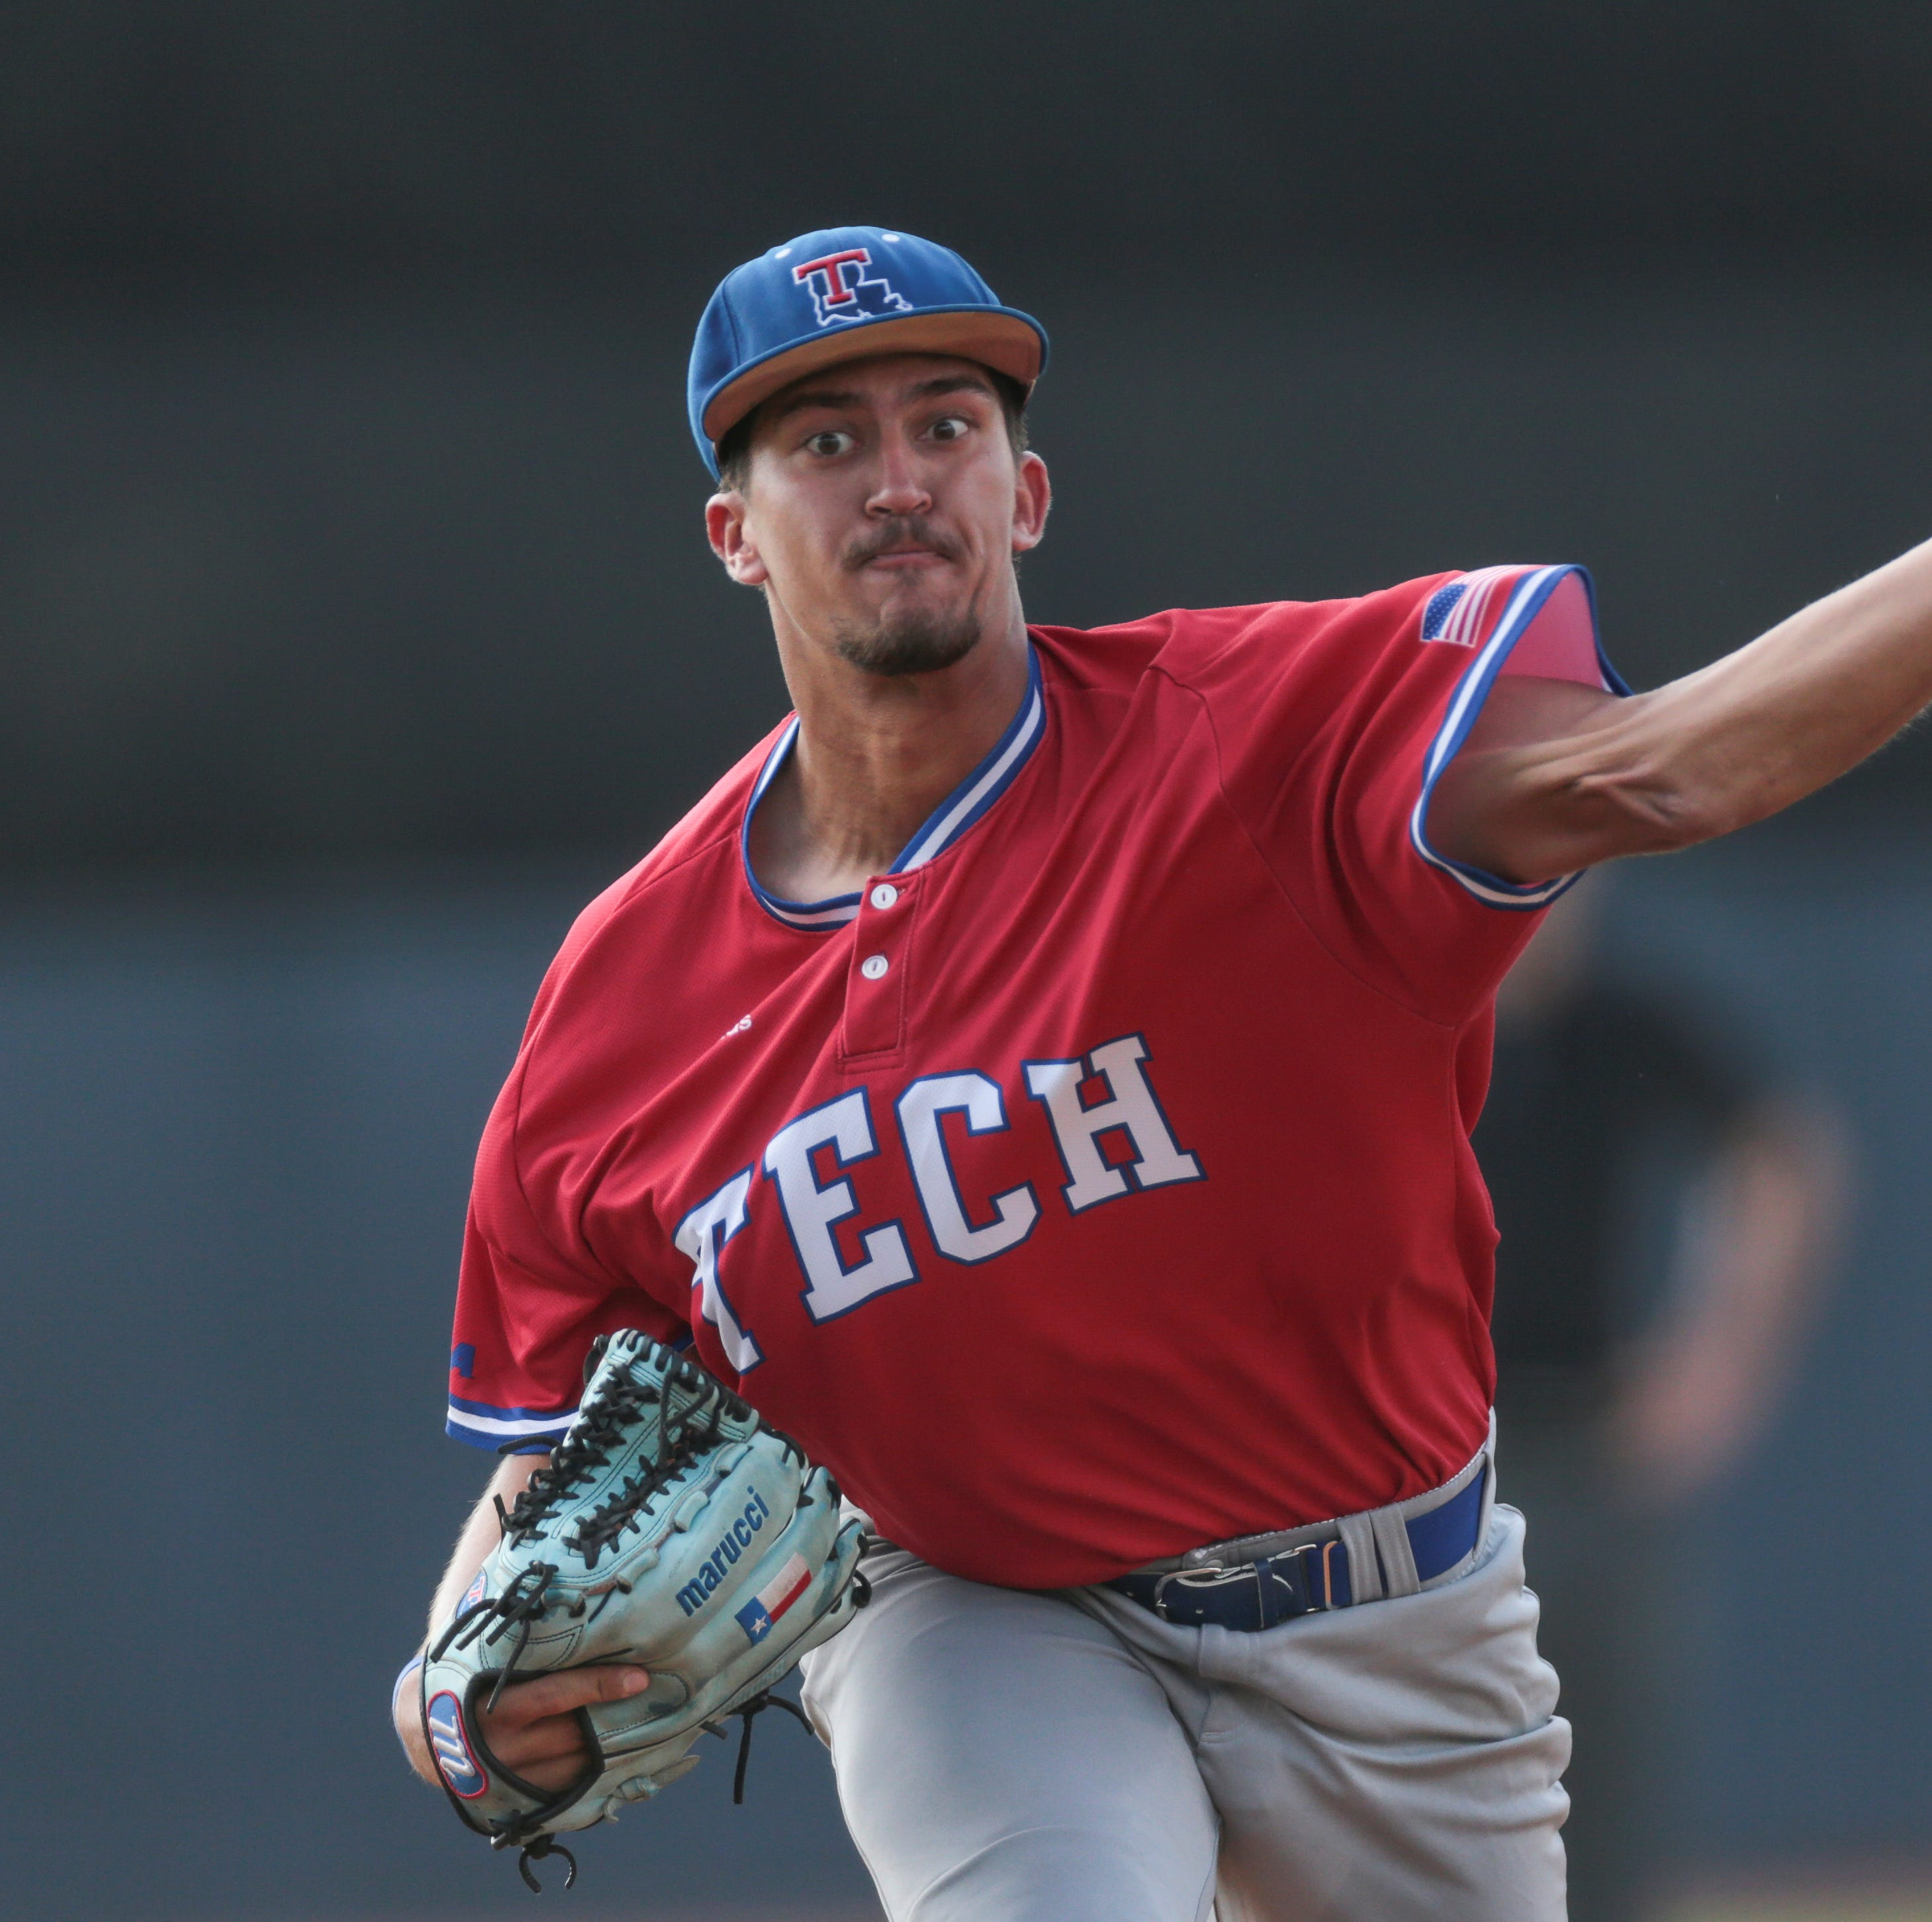 LA Tech's C-USA tourney blues continue, ousted by Rice to go winless